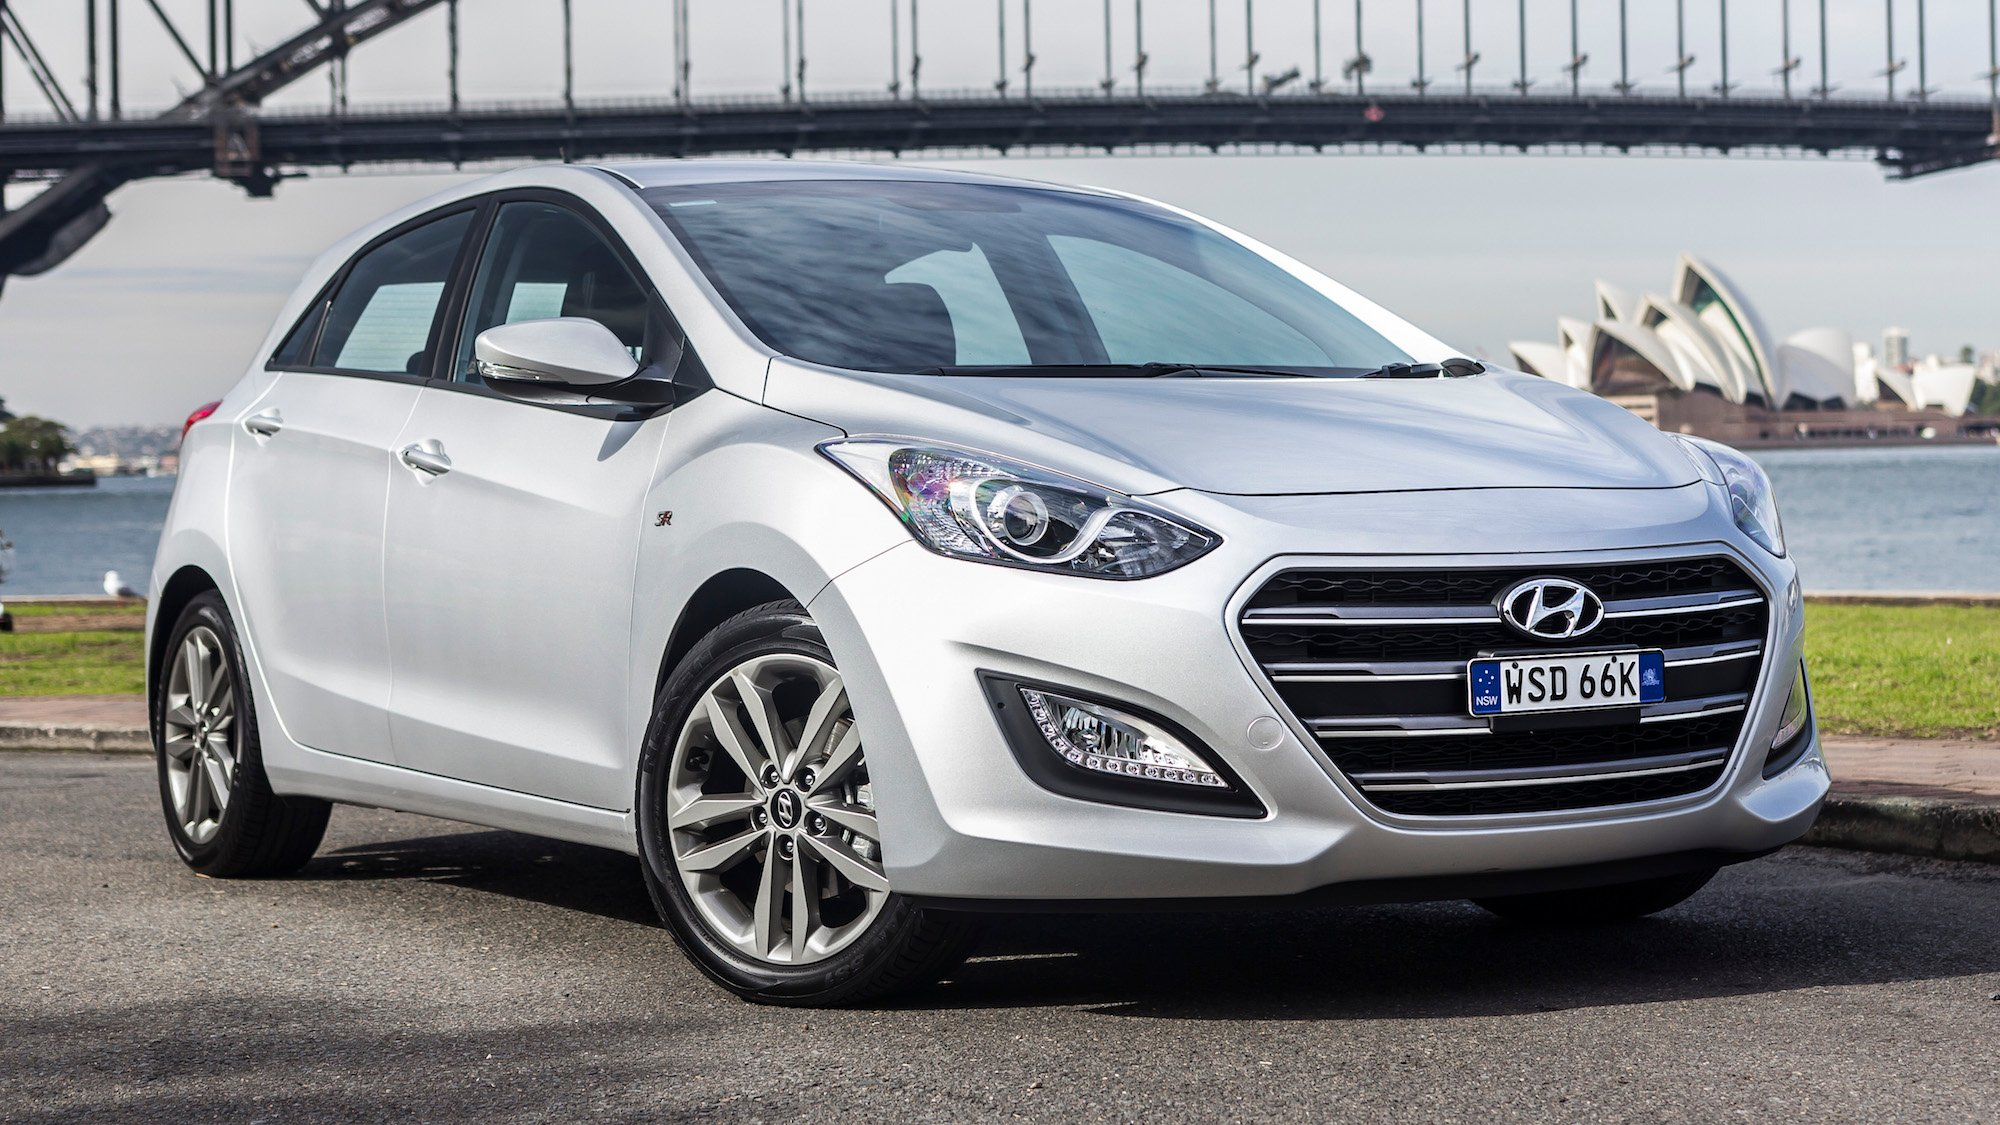 2016 Hyundai I30 Tucson Santa Fe Pick Up Apple Carplay